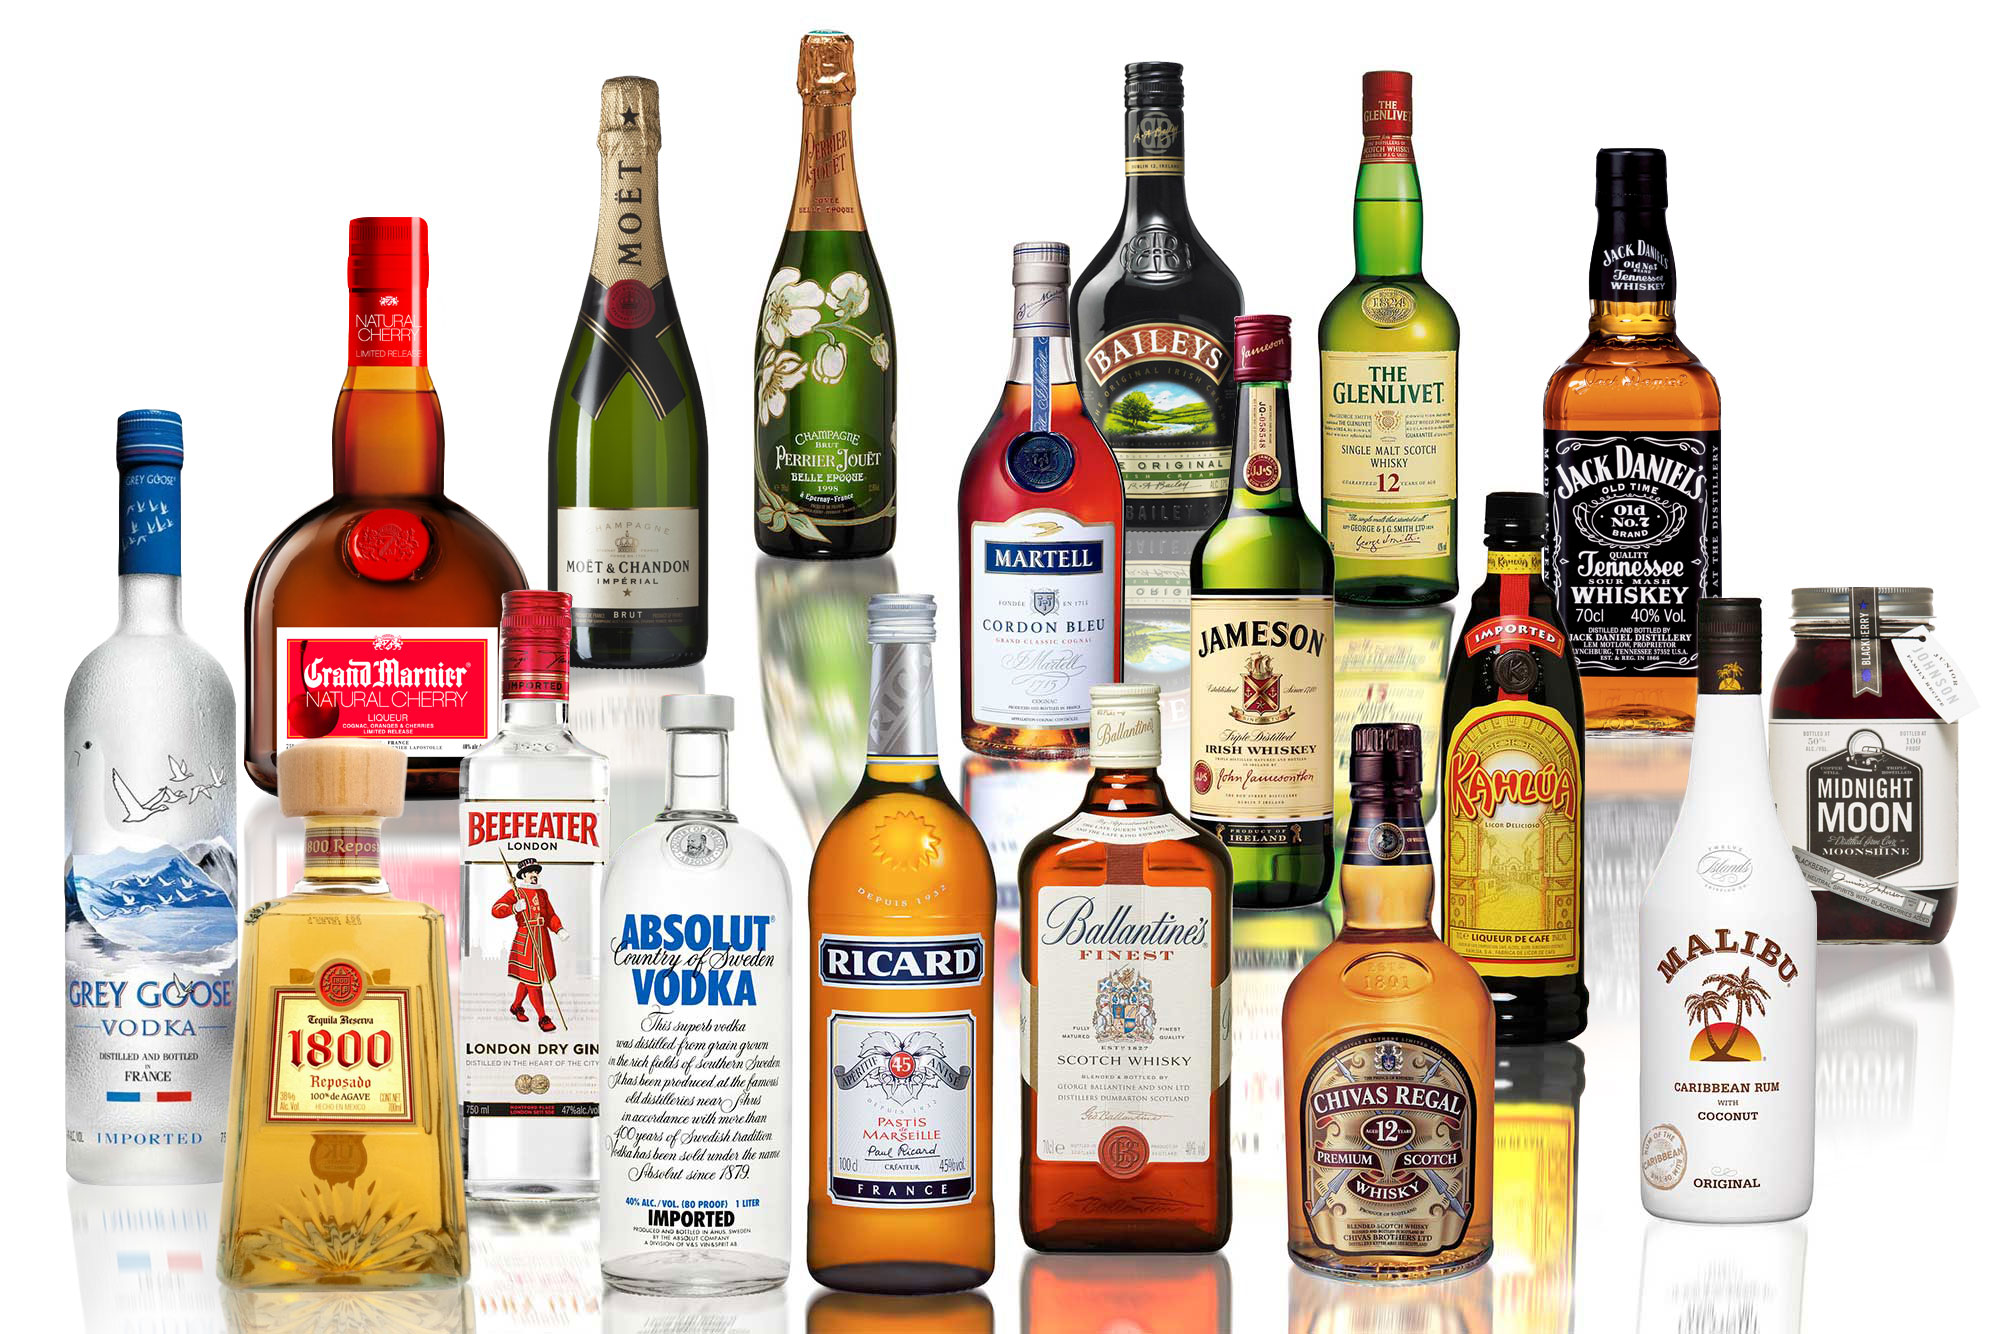 Spirits Package 2 : $350. assorted sodas, Corona beer, Modelo beer, bottled water, Grey Goose vodka, Pina Colada mix, Kahula, Cranberry juice, Jack Daniels Black, Rum, Tequila Don Julio, mineral water, Margarita mix, White wine, Red wine, assorted nuts, chips, & pretzels.